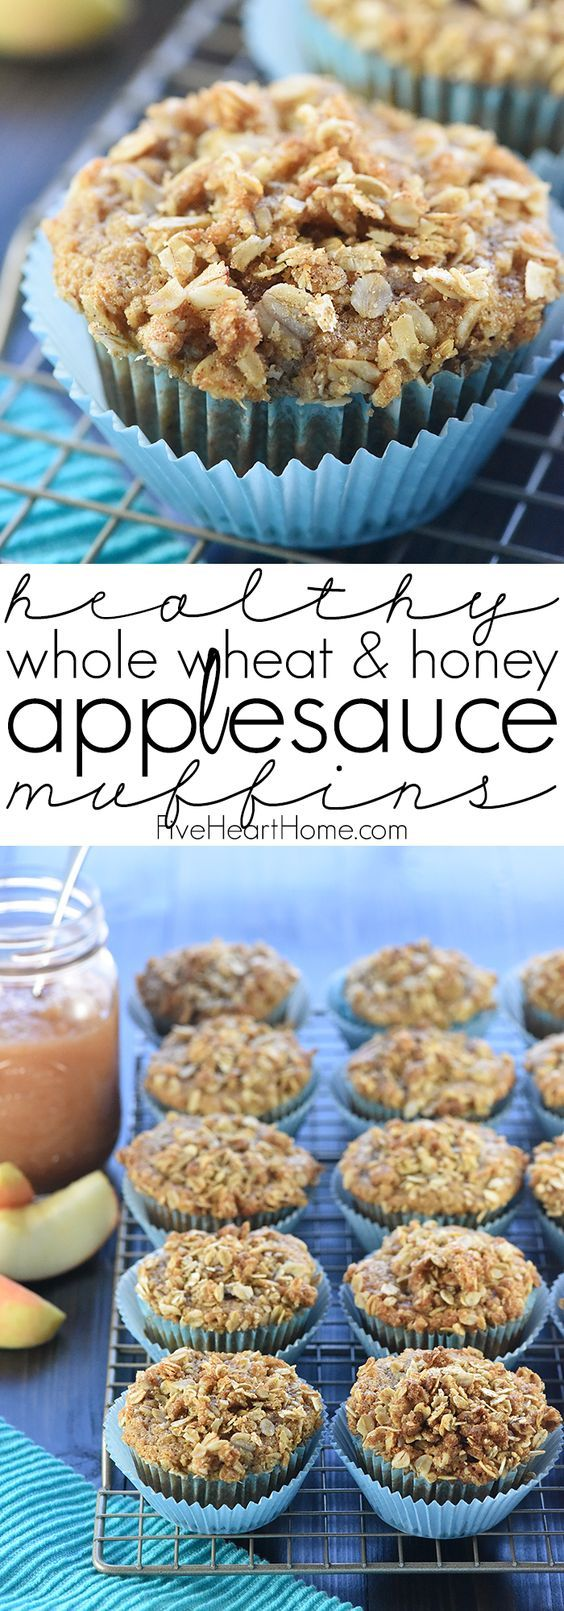 Healthy Whole Wheat & Honey Applesauce Muffins ~ soft, moist, and made with wholesome ingredients including whole wheat flour, Greek yogurt, coconut oil, and honey! | FiveHeartHome.com